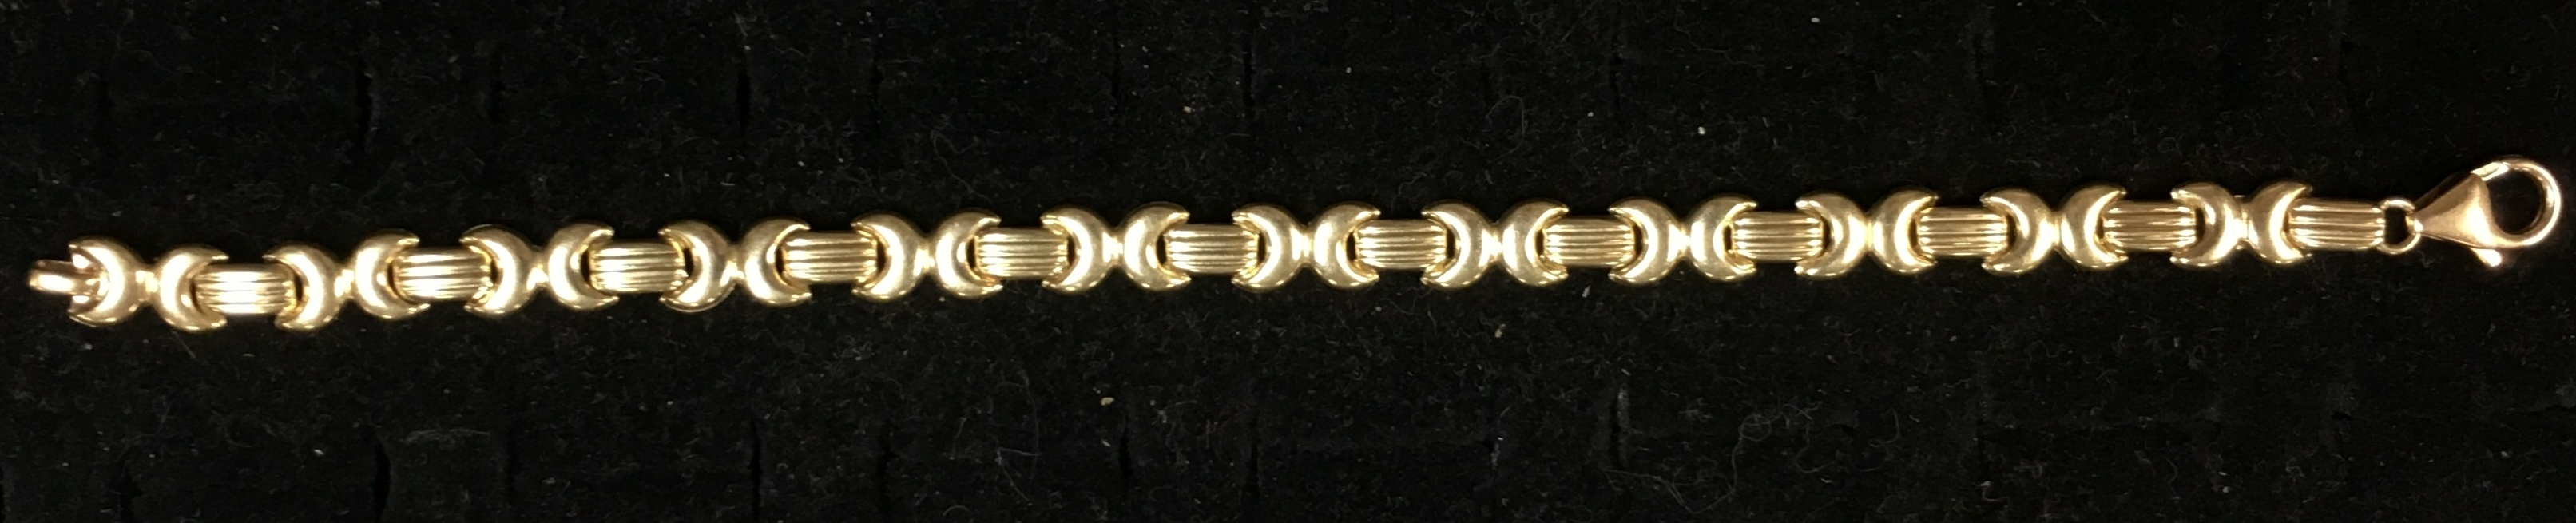 14KT YELLOW GOLD CRESENT MOON FLANKING LINK. LENGTH: 7